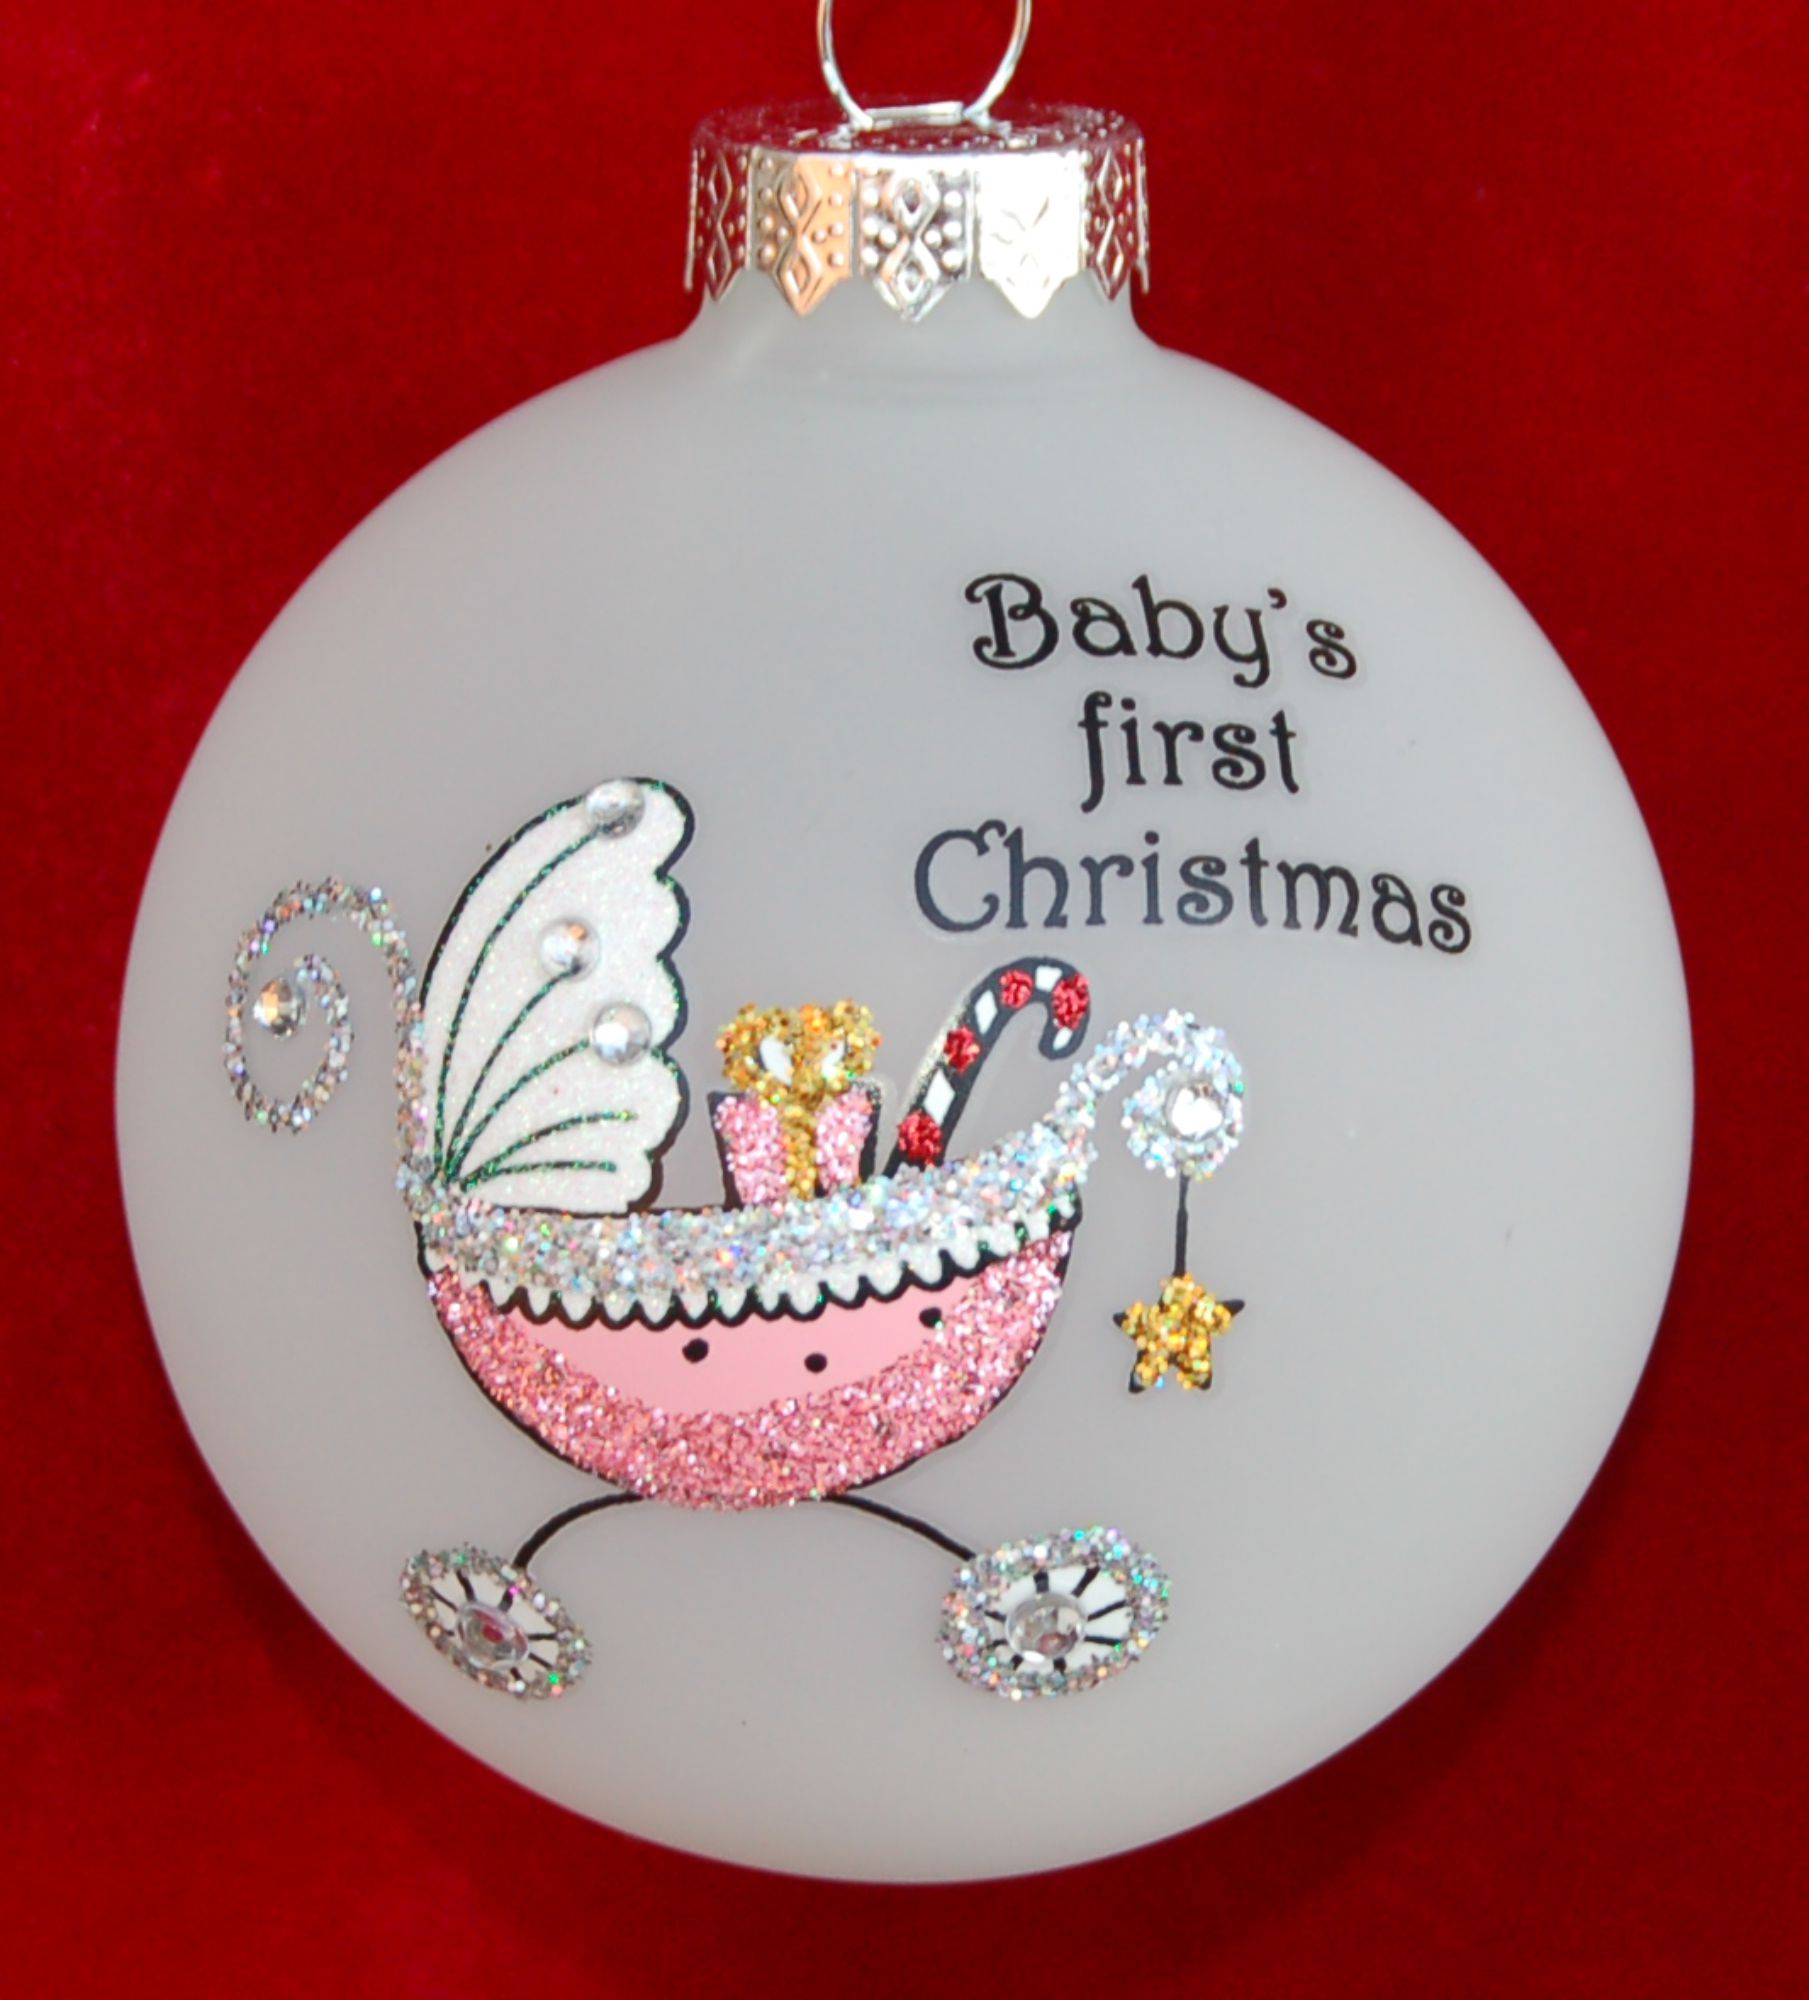 Baby's First Christmas Ornament Precious Girl Personalized by Russell Rhodes